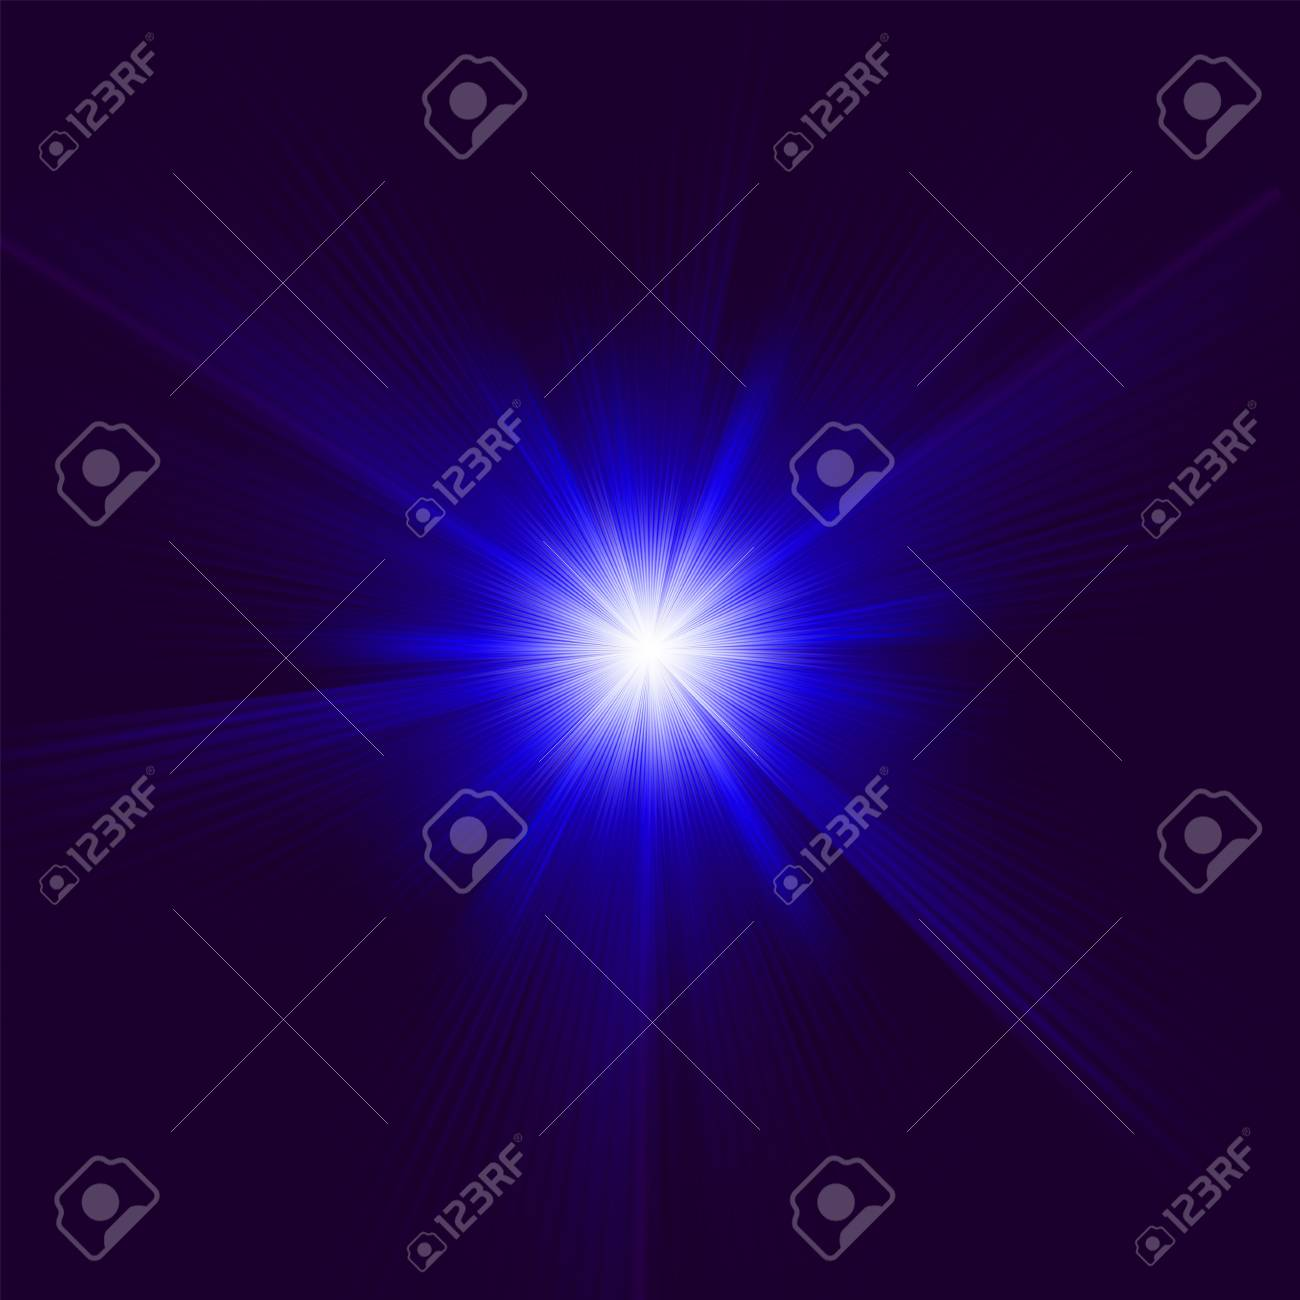 A Blue color design with a burst file included Stock Vector - 14282783